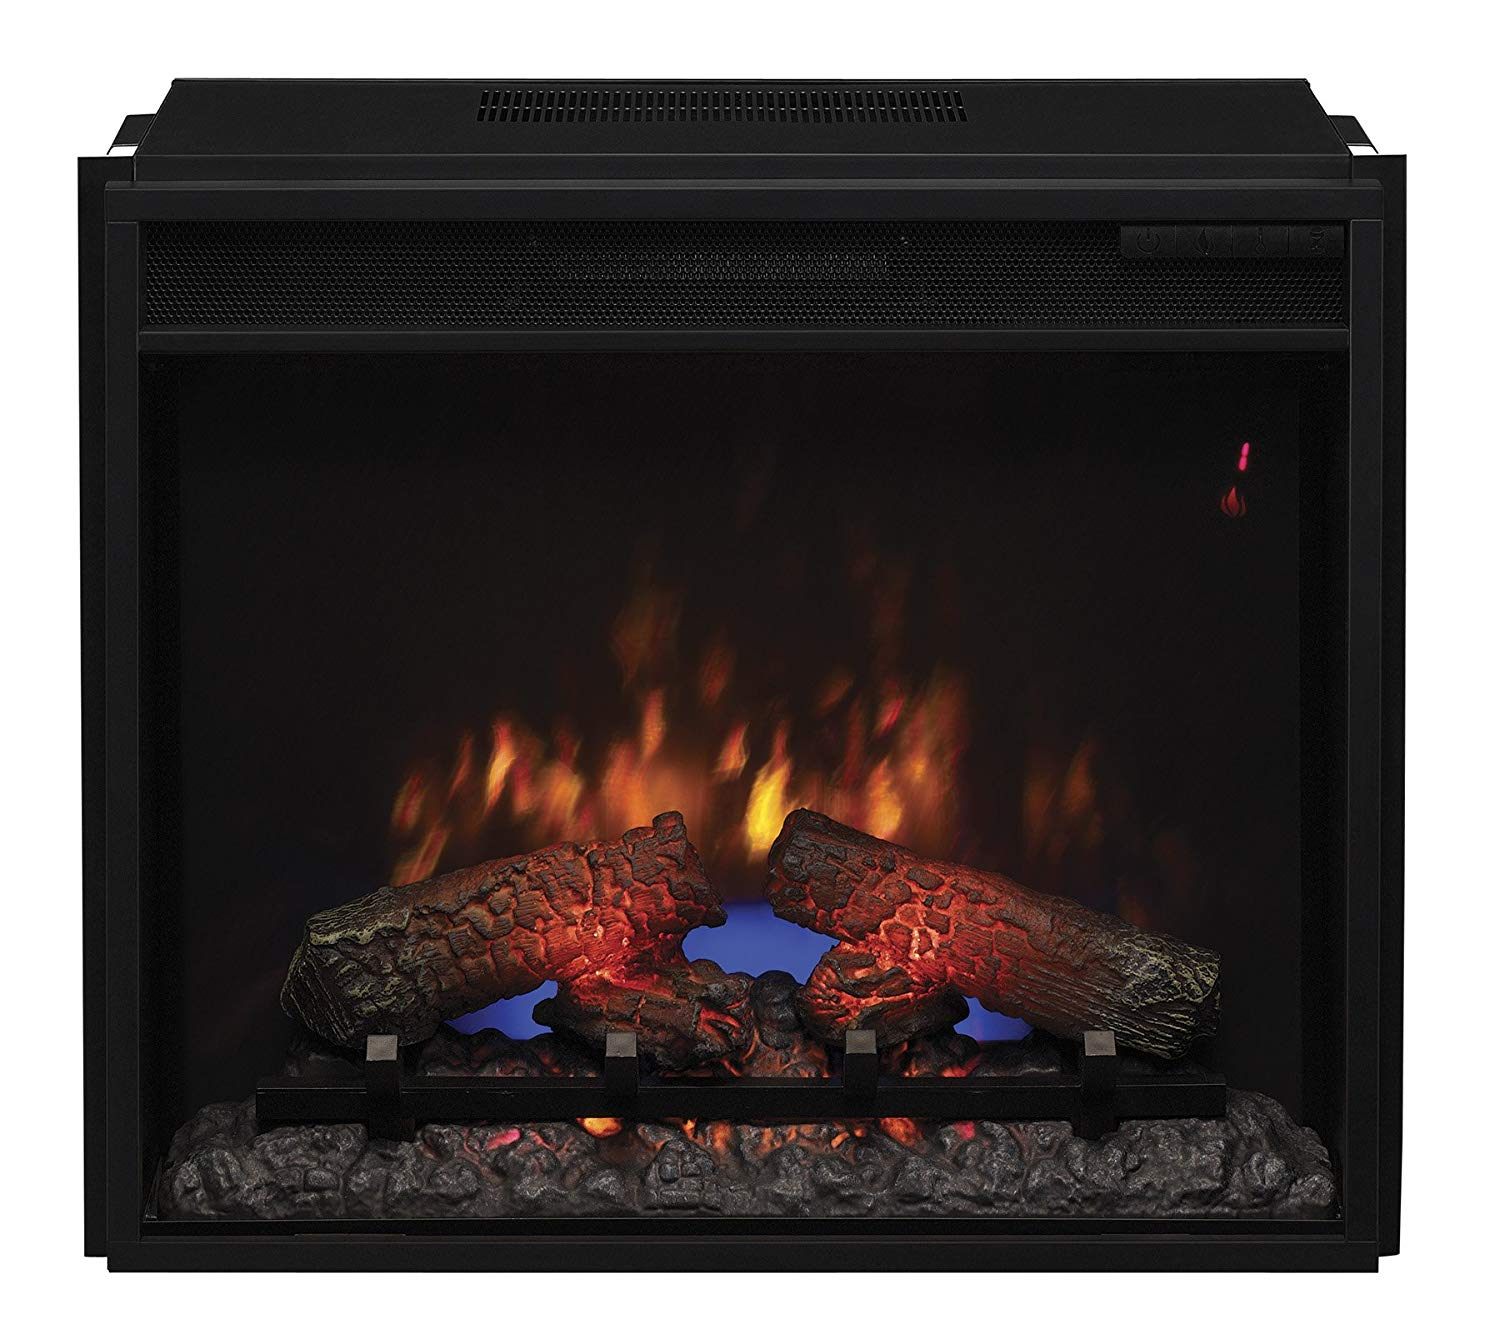 "Twin Star Electric Fireplace Beautiful Classicflame 23ef031grp 23"" Electric Fireplace Insert with Safer Plug"